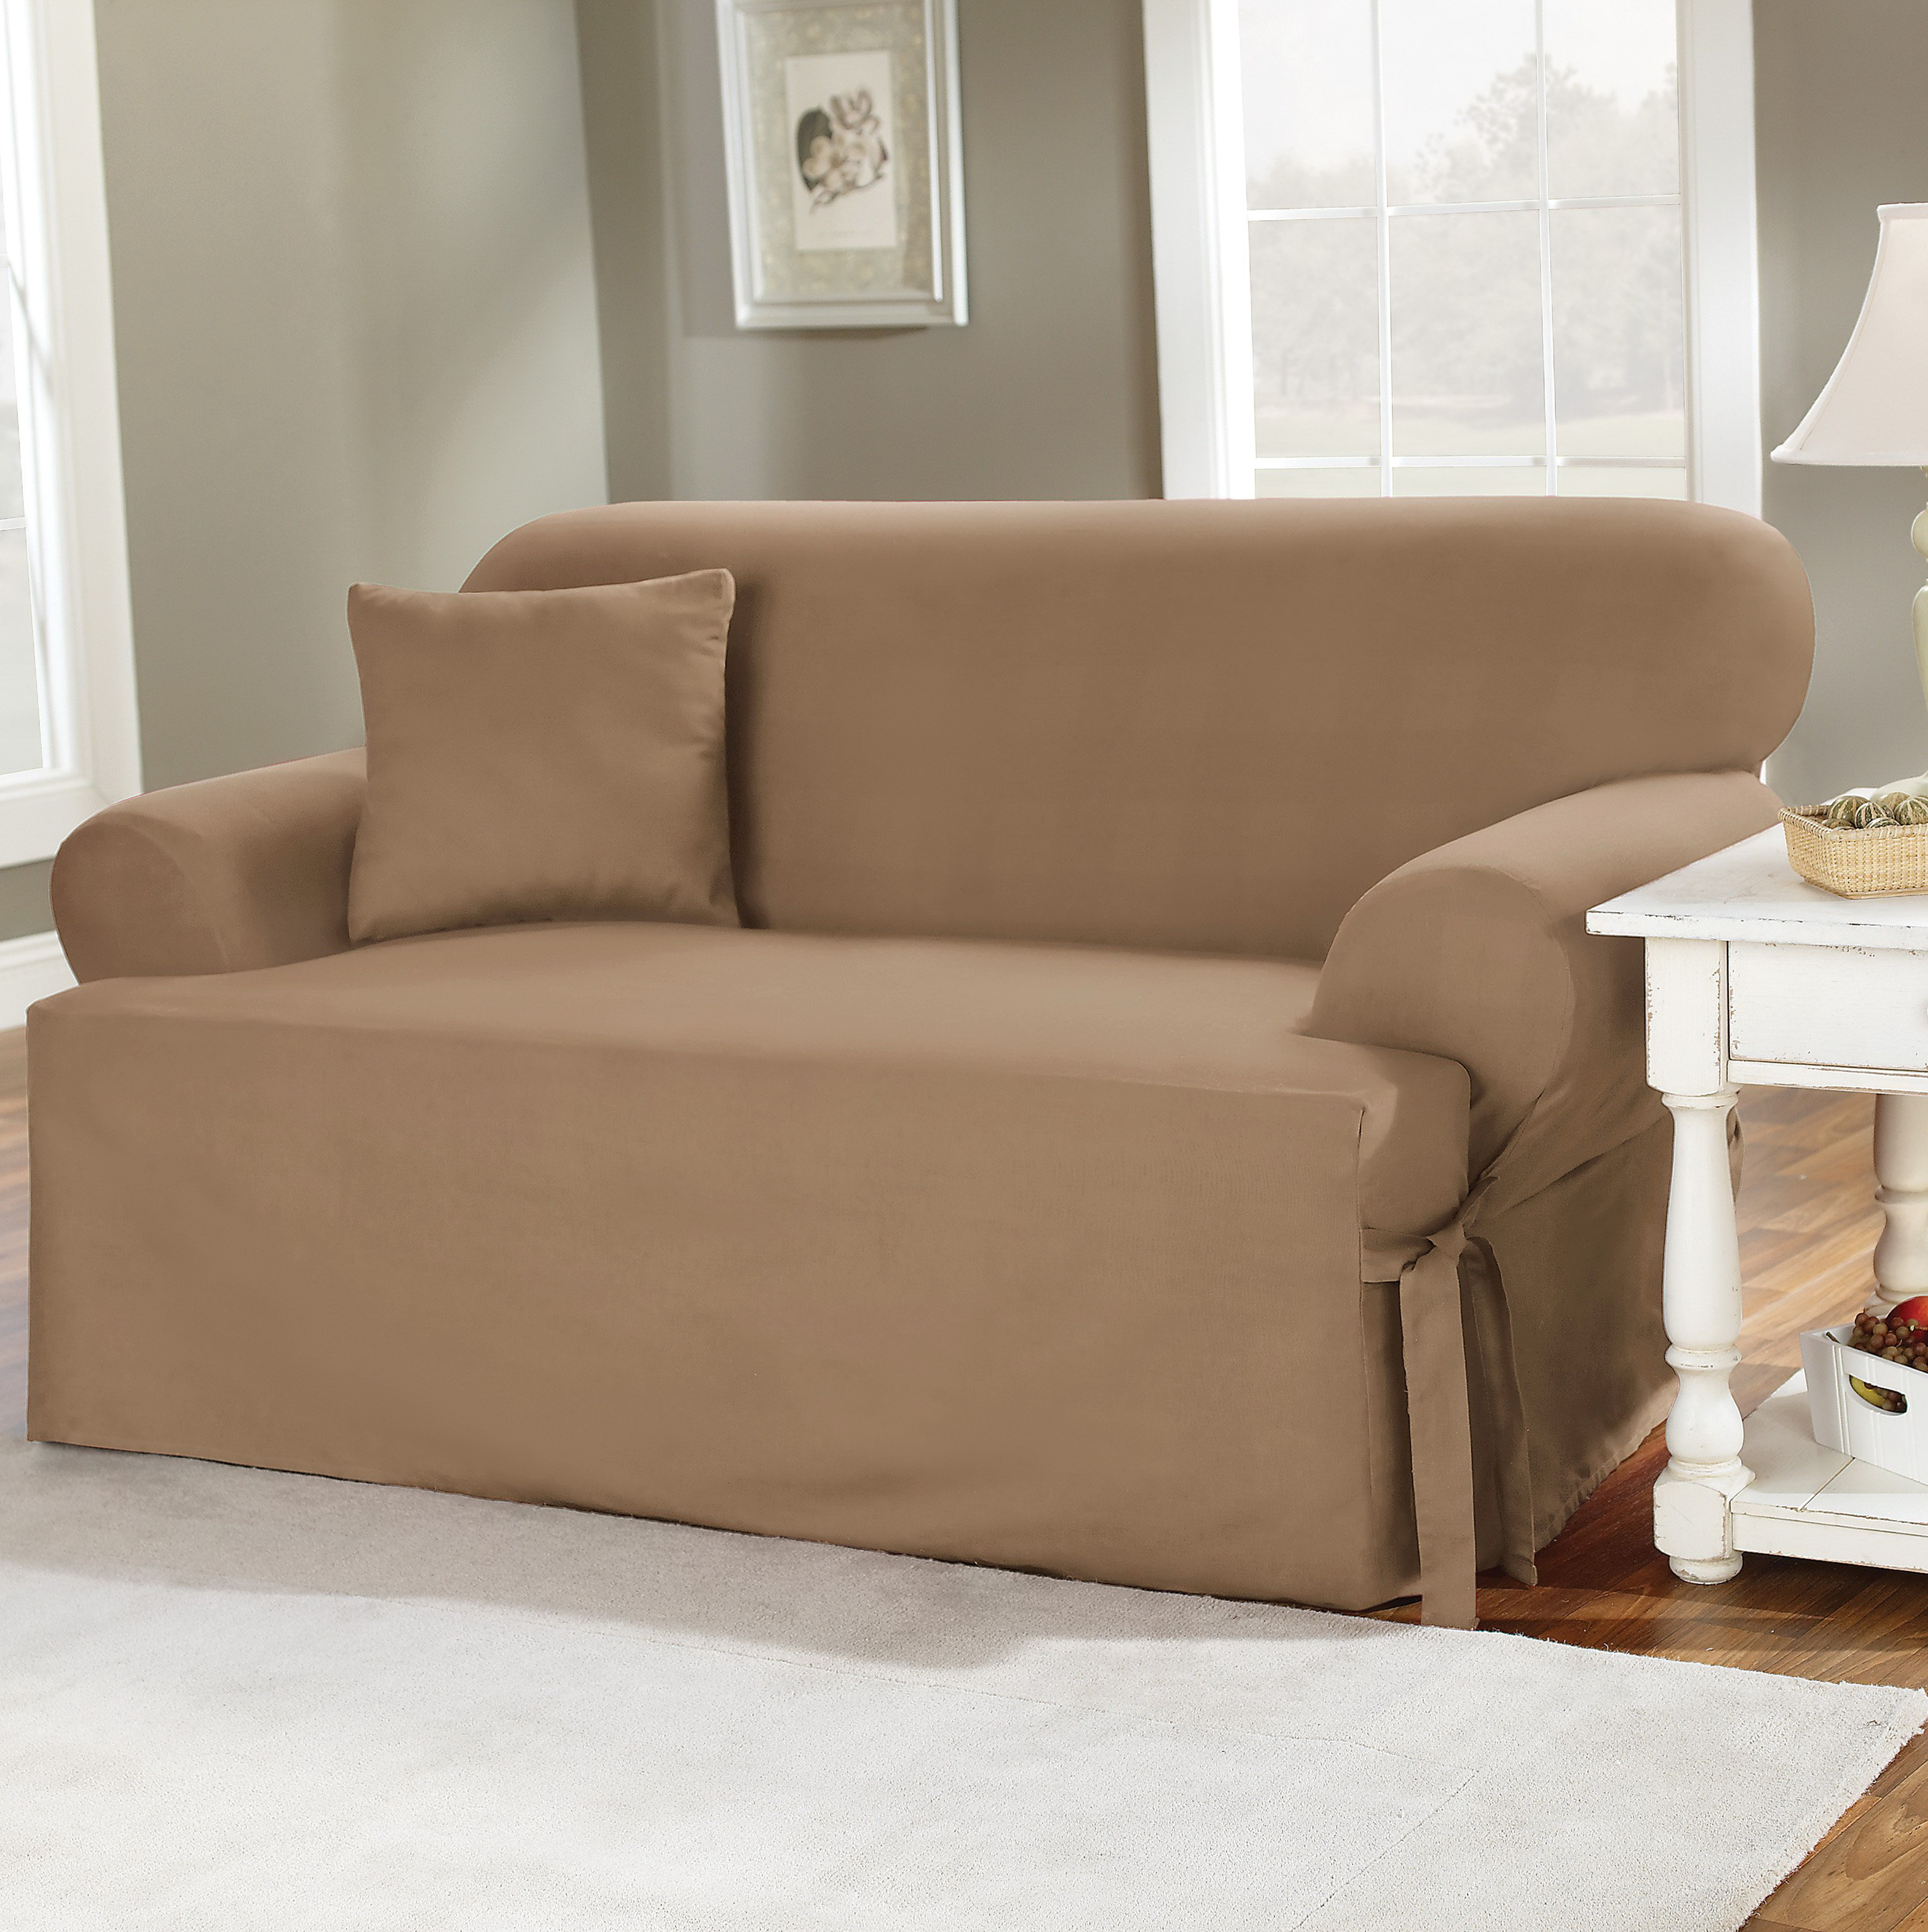 Sofa Set Cover India Sofa Seat Covers Online Custom Slipcovers And Couch Cover